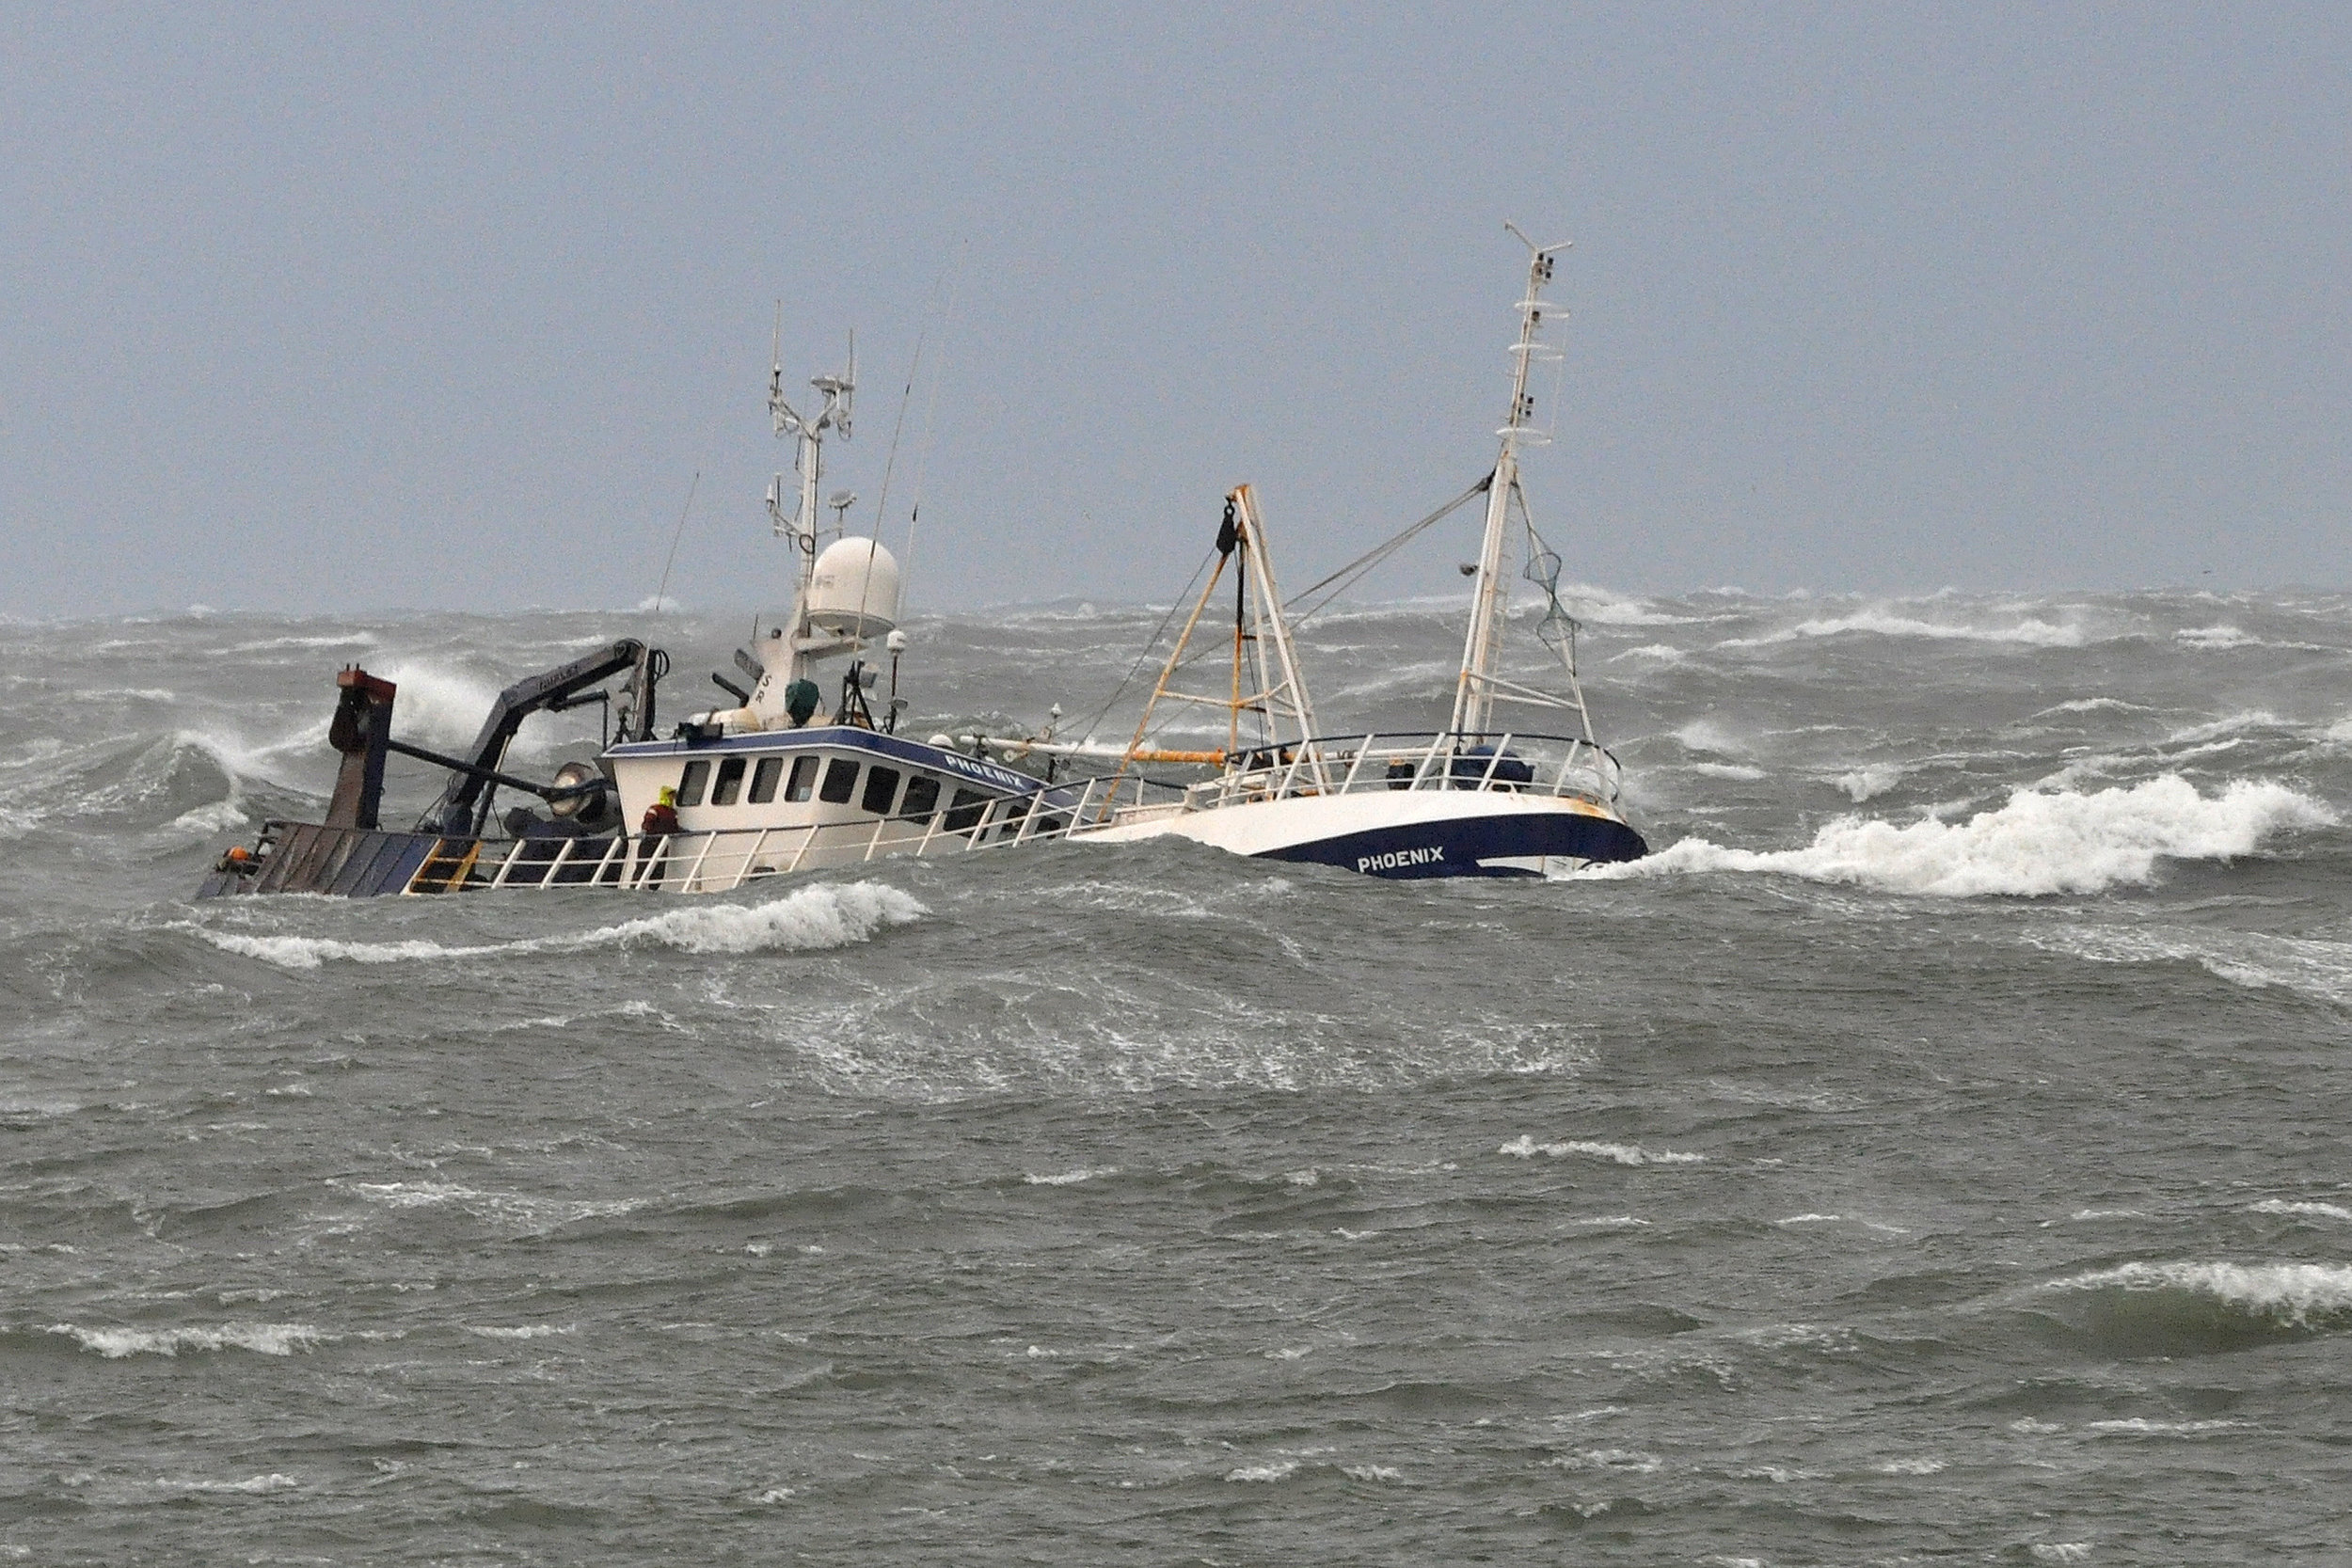 Fishing Boat Phoenix.jpg